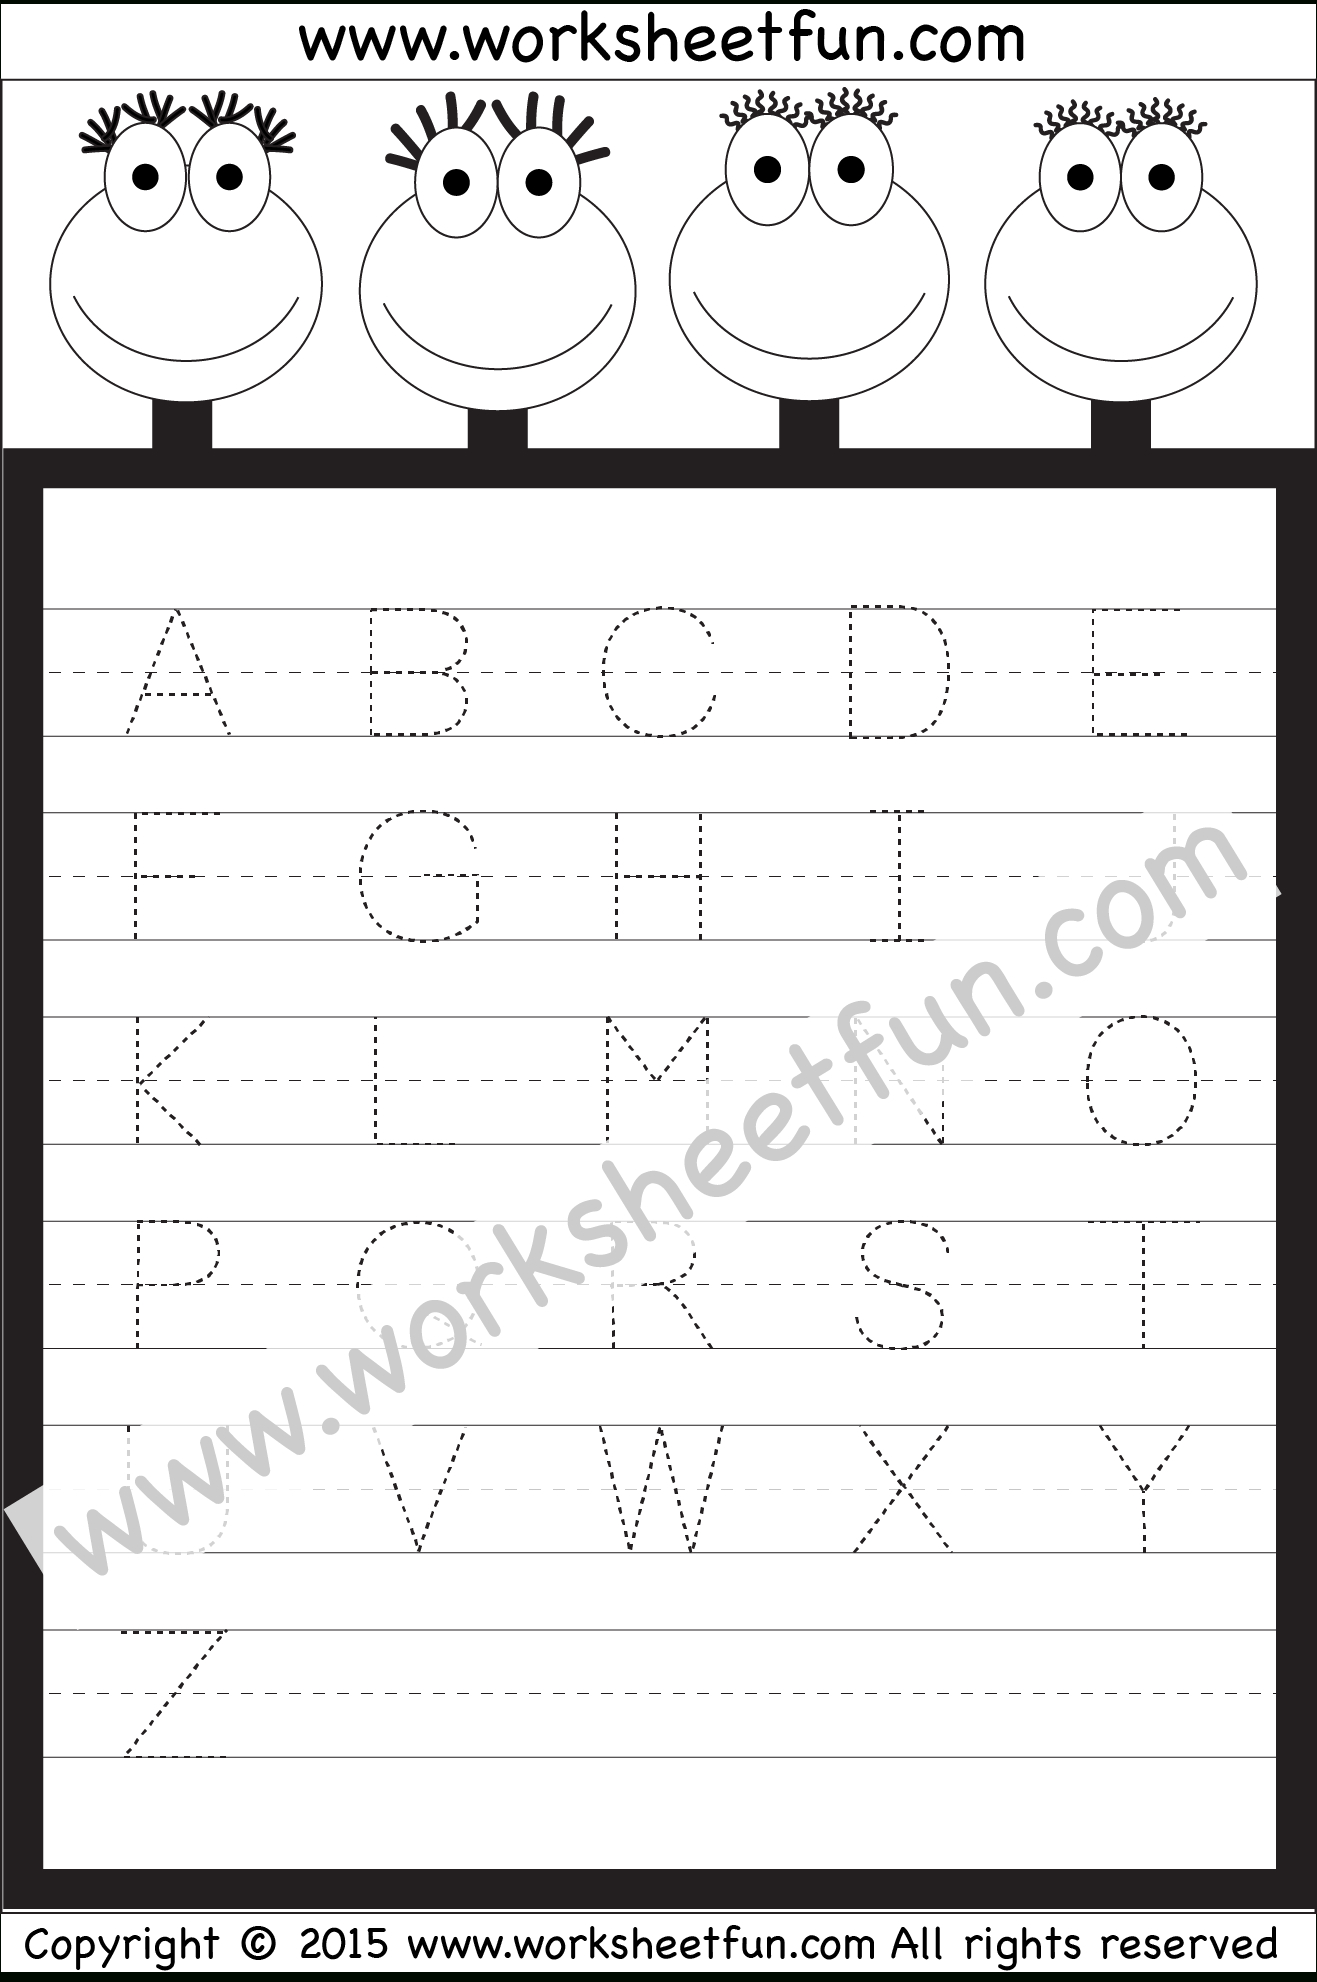 Letter Tracing Worksheet – Capital Letters / Free Printable | Capital Alphabets Tracing Worksheets Printable